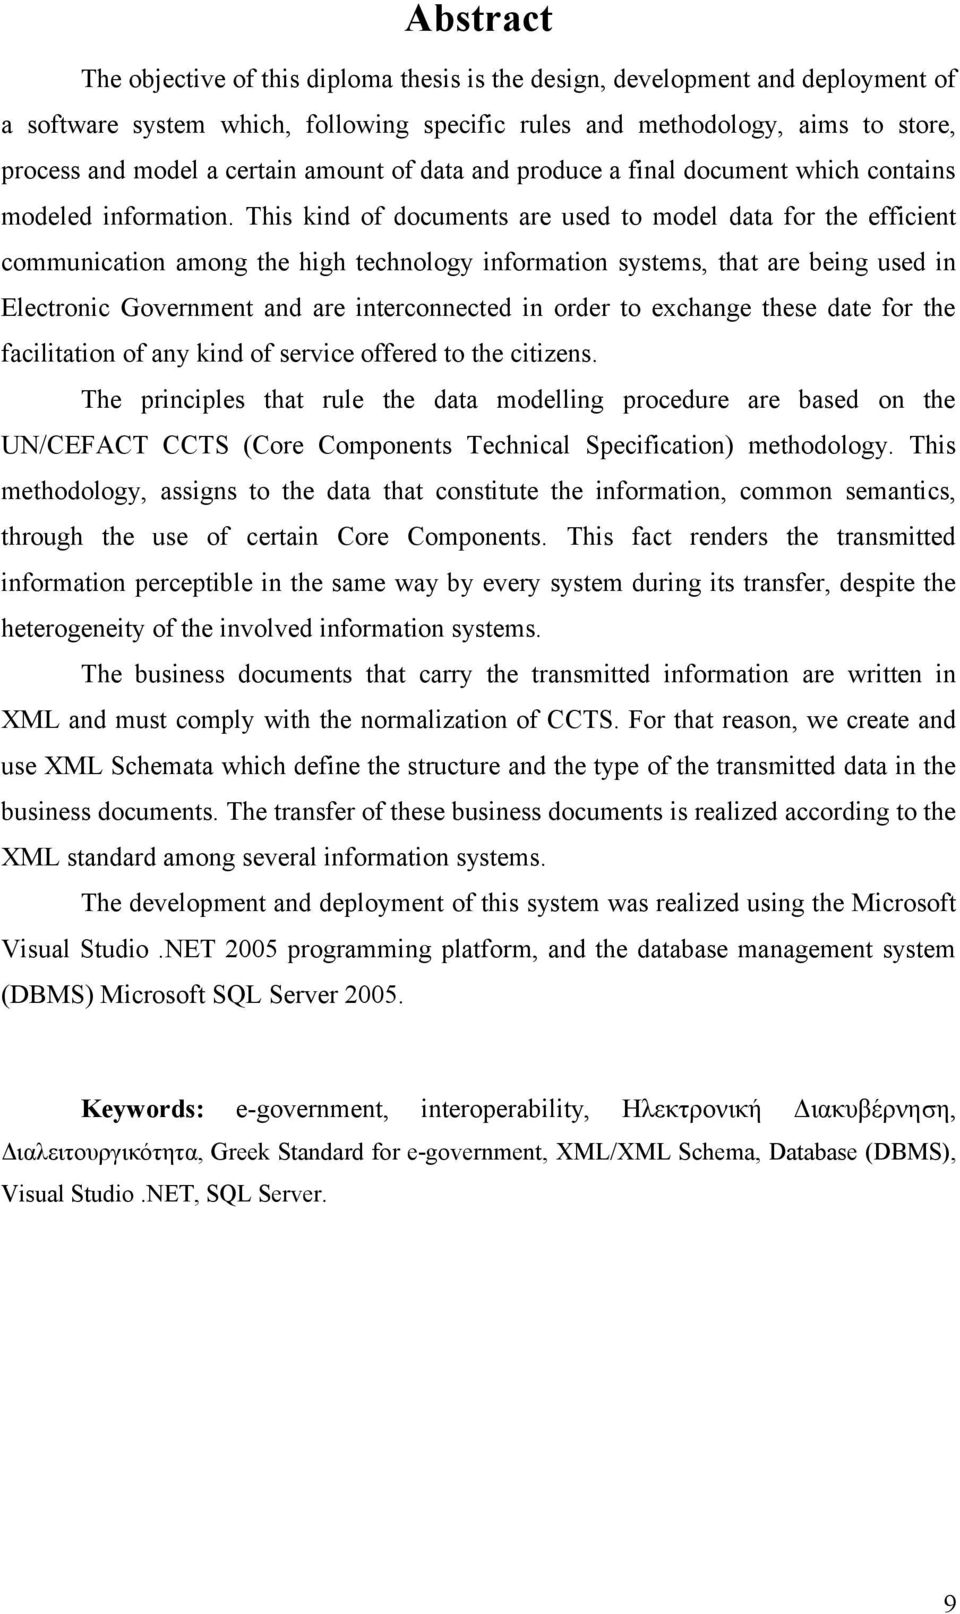 This kind of documents are used to model data for the efficient communication among the high technology information systems, that are being used in Electronic Government and are interconnected in